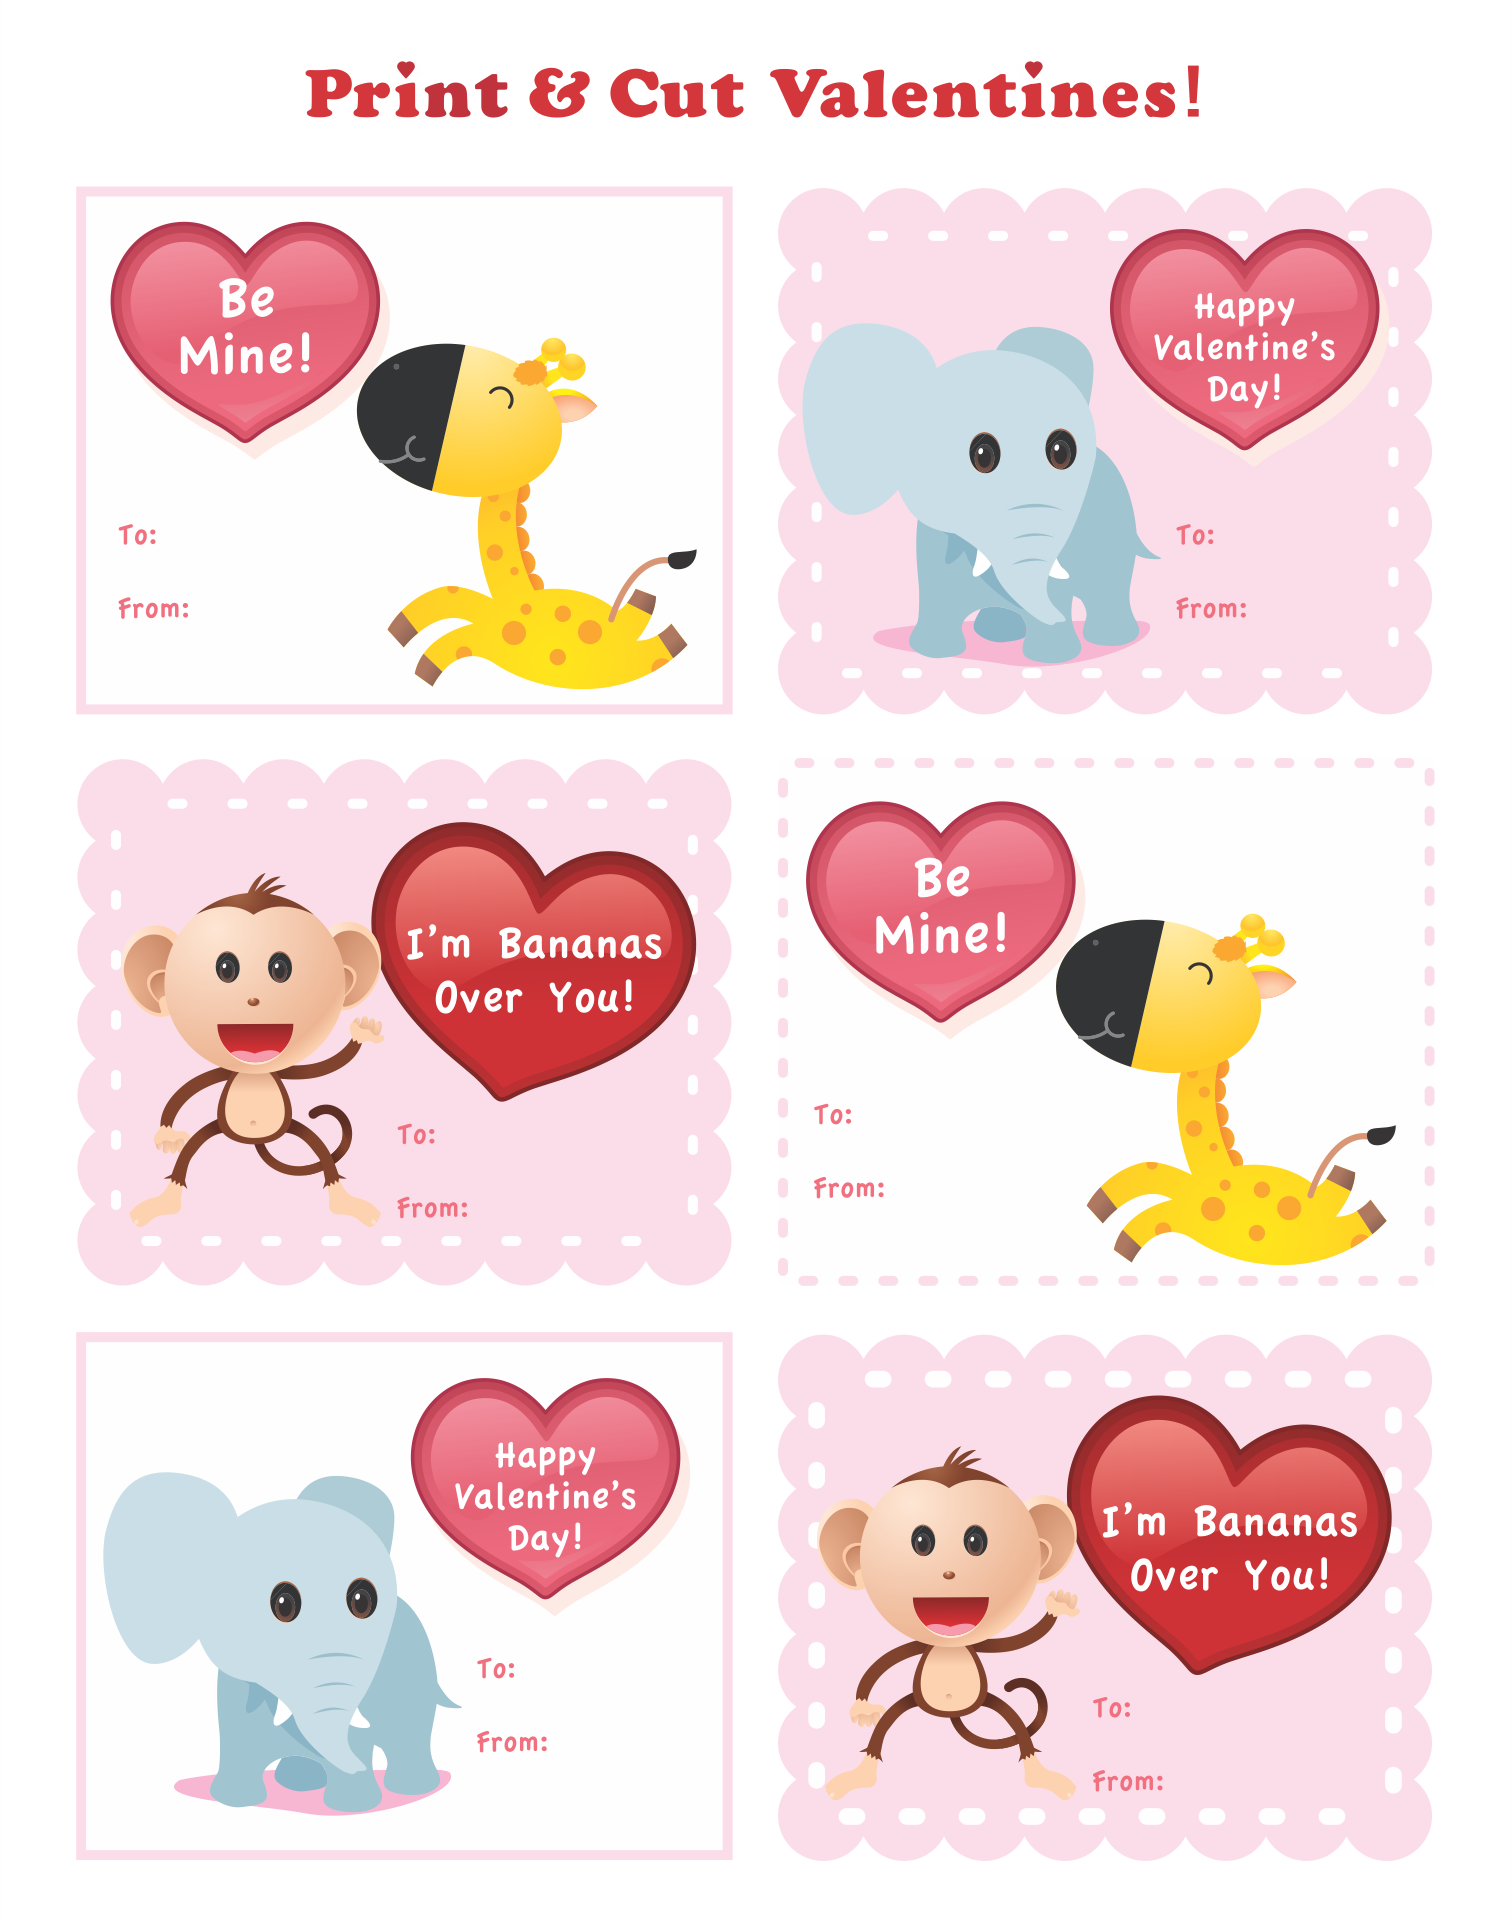 9 Images of Christian Valentine's Day Card Printable Templates